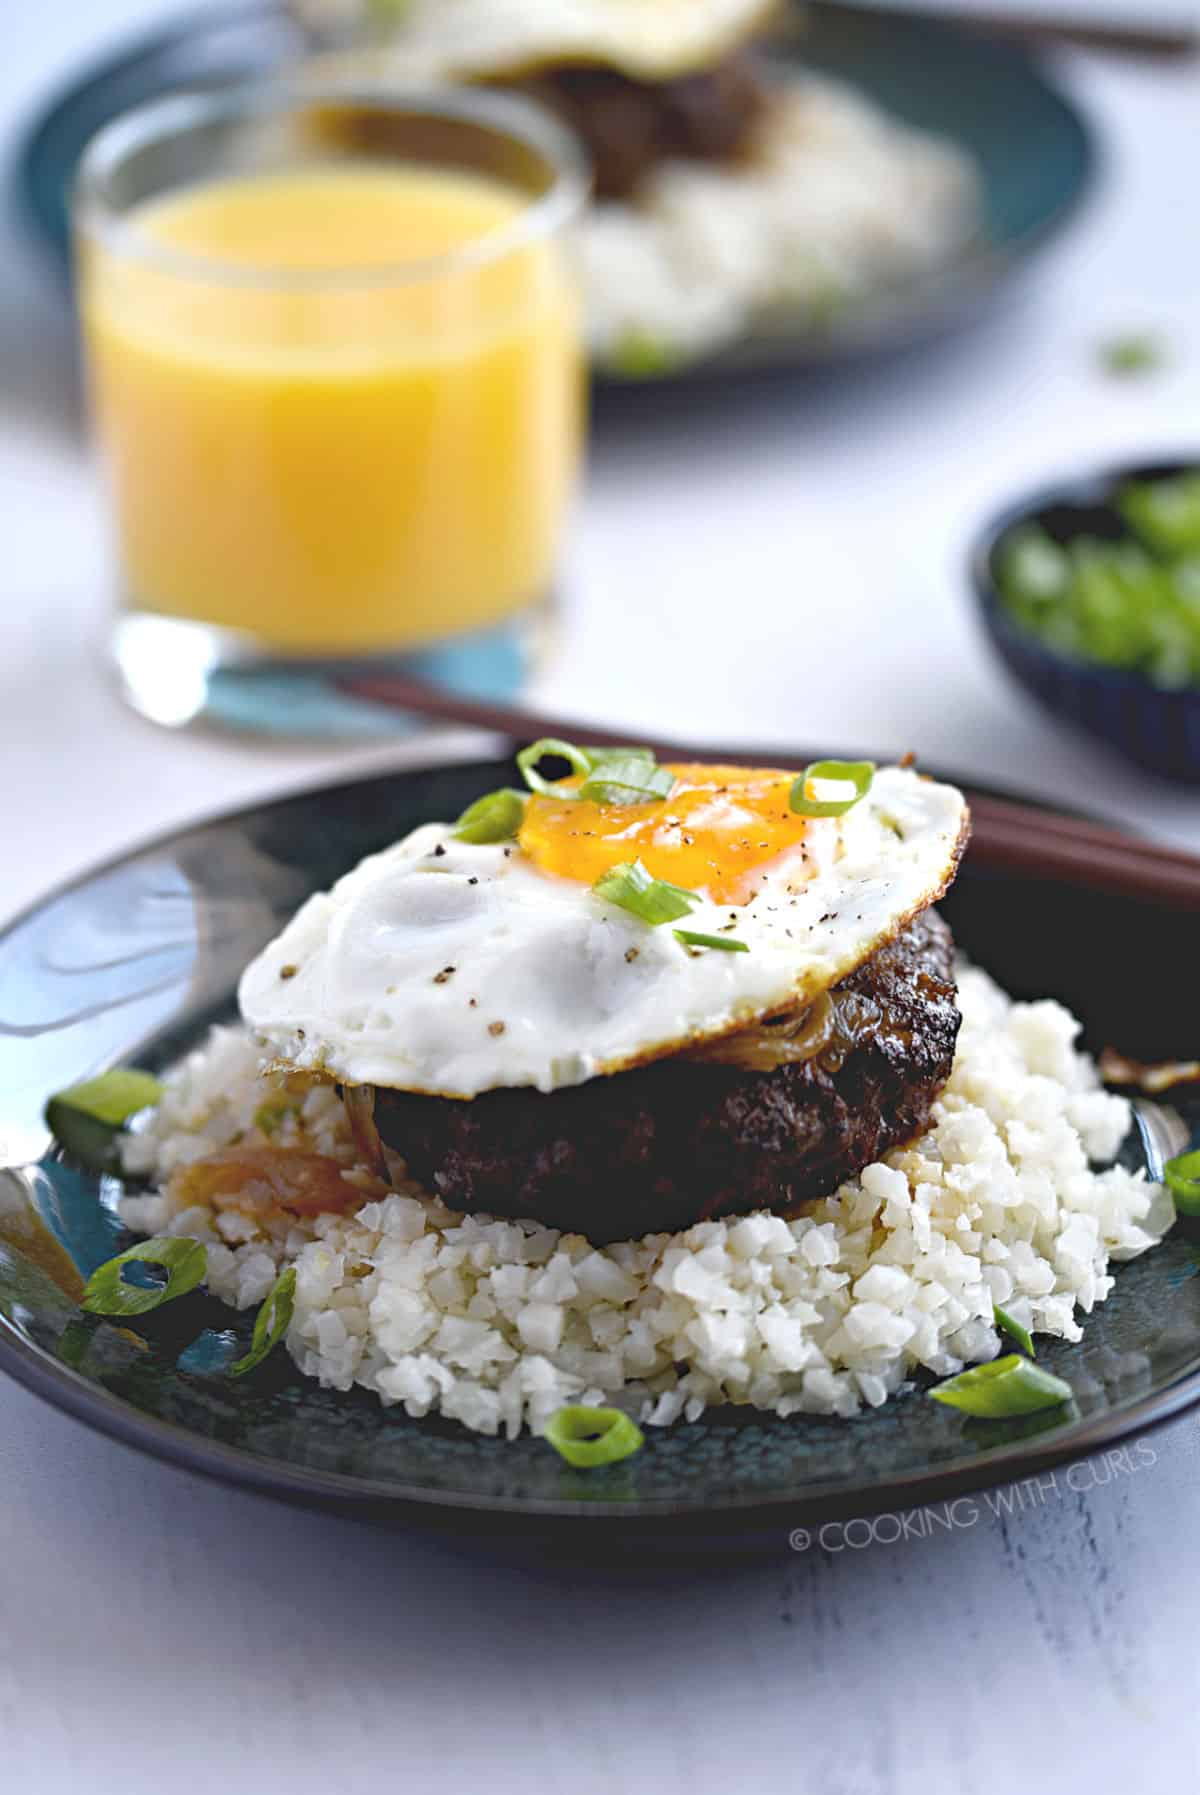 a burger patty topped with brown gravy, fried egg and green onions on a bed of rice with a glass of orange juice and a second plate of food in the background.